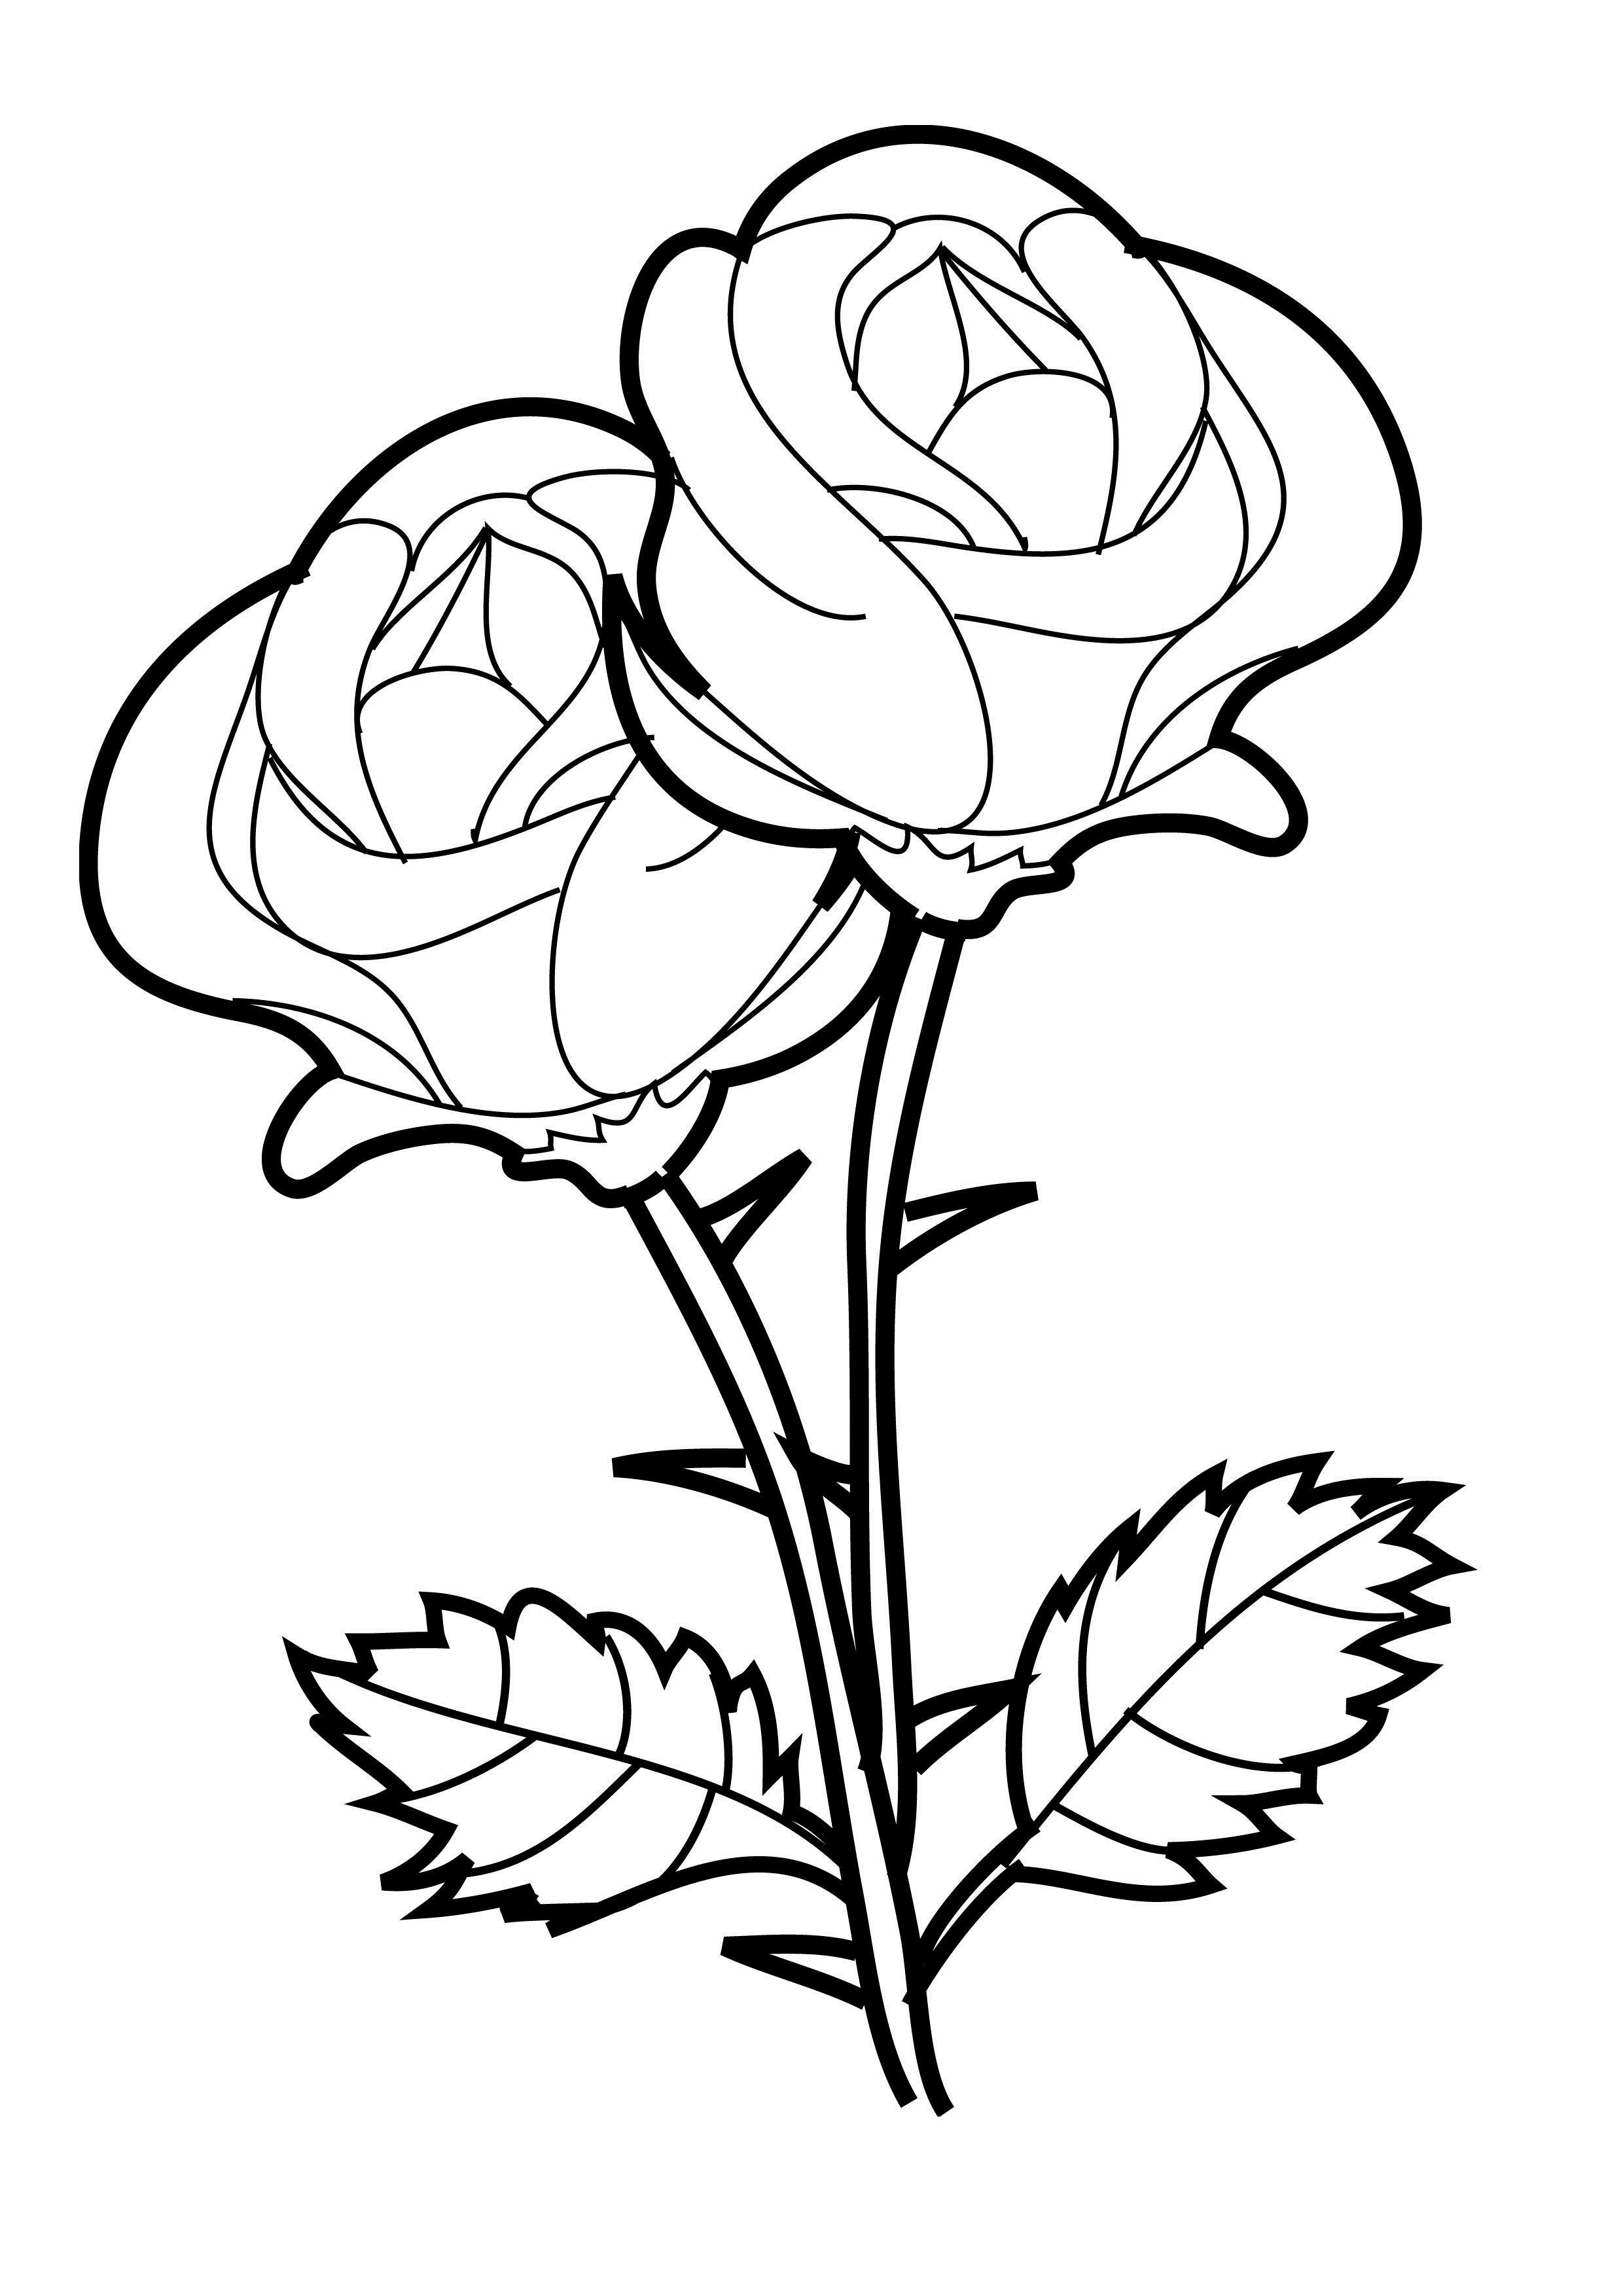 rose coloring books free printable roses coloring pages for kids books coloring rose